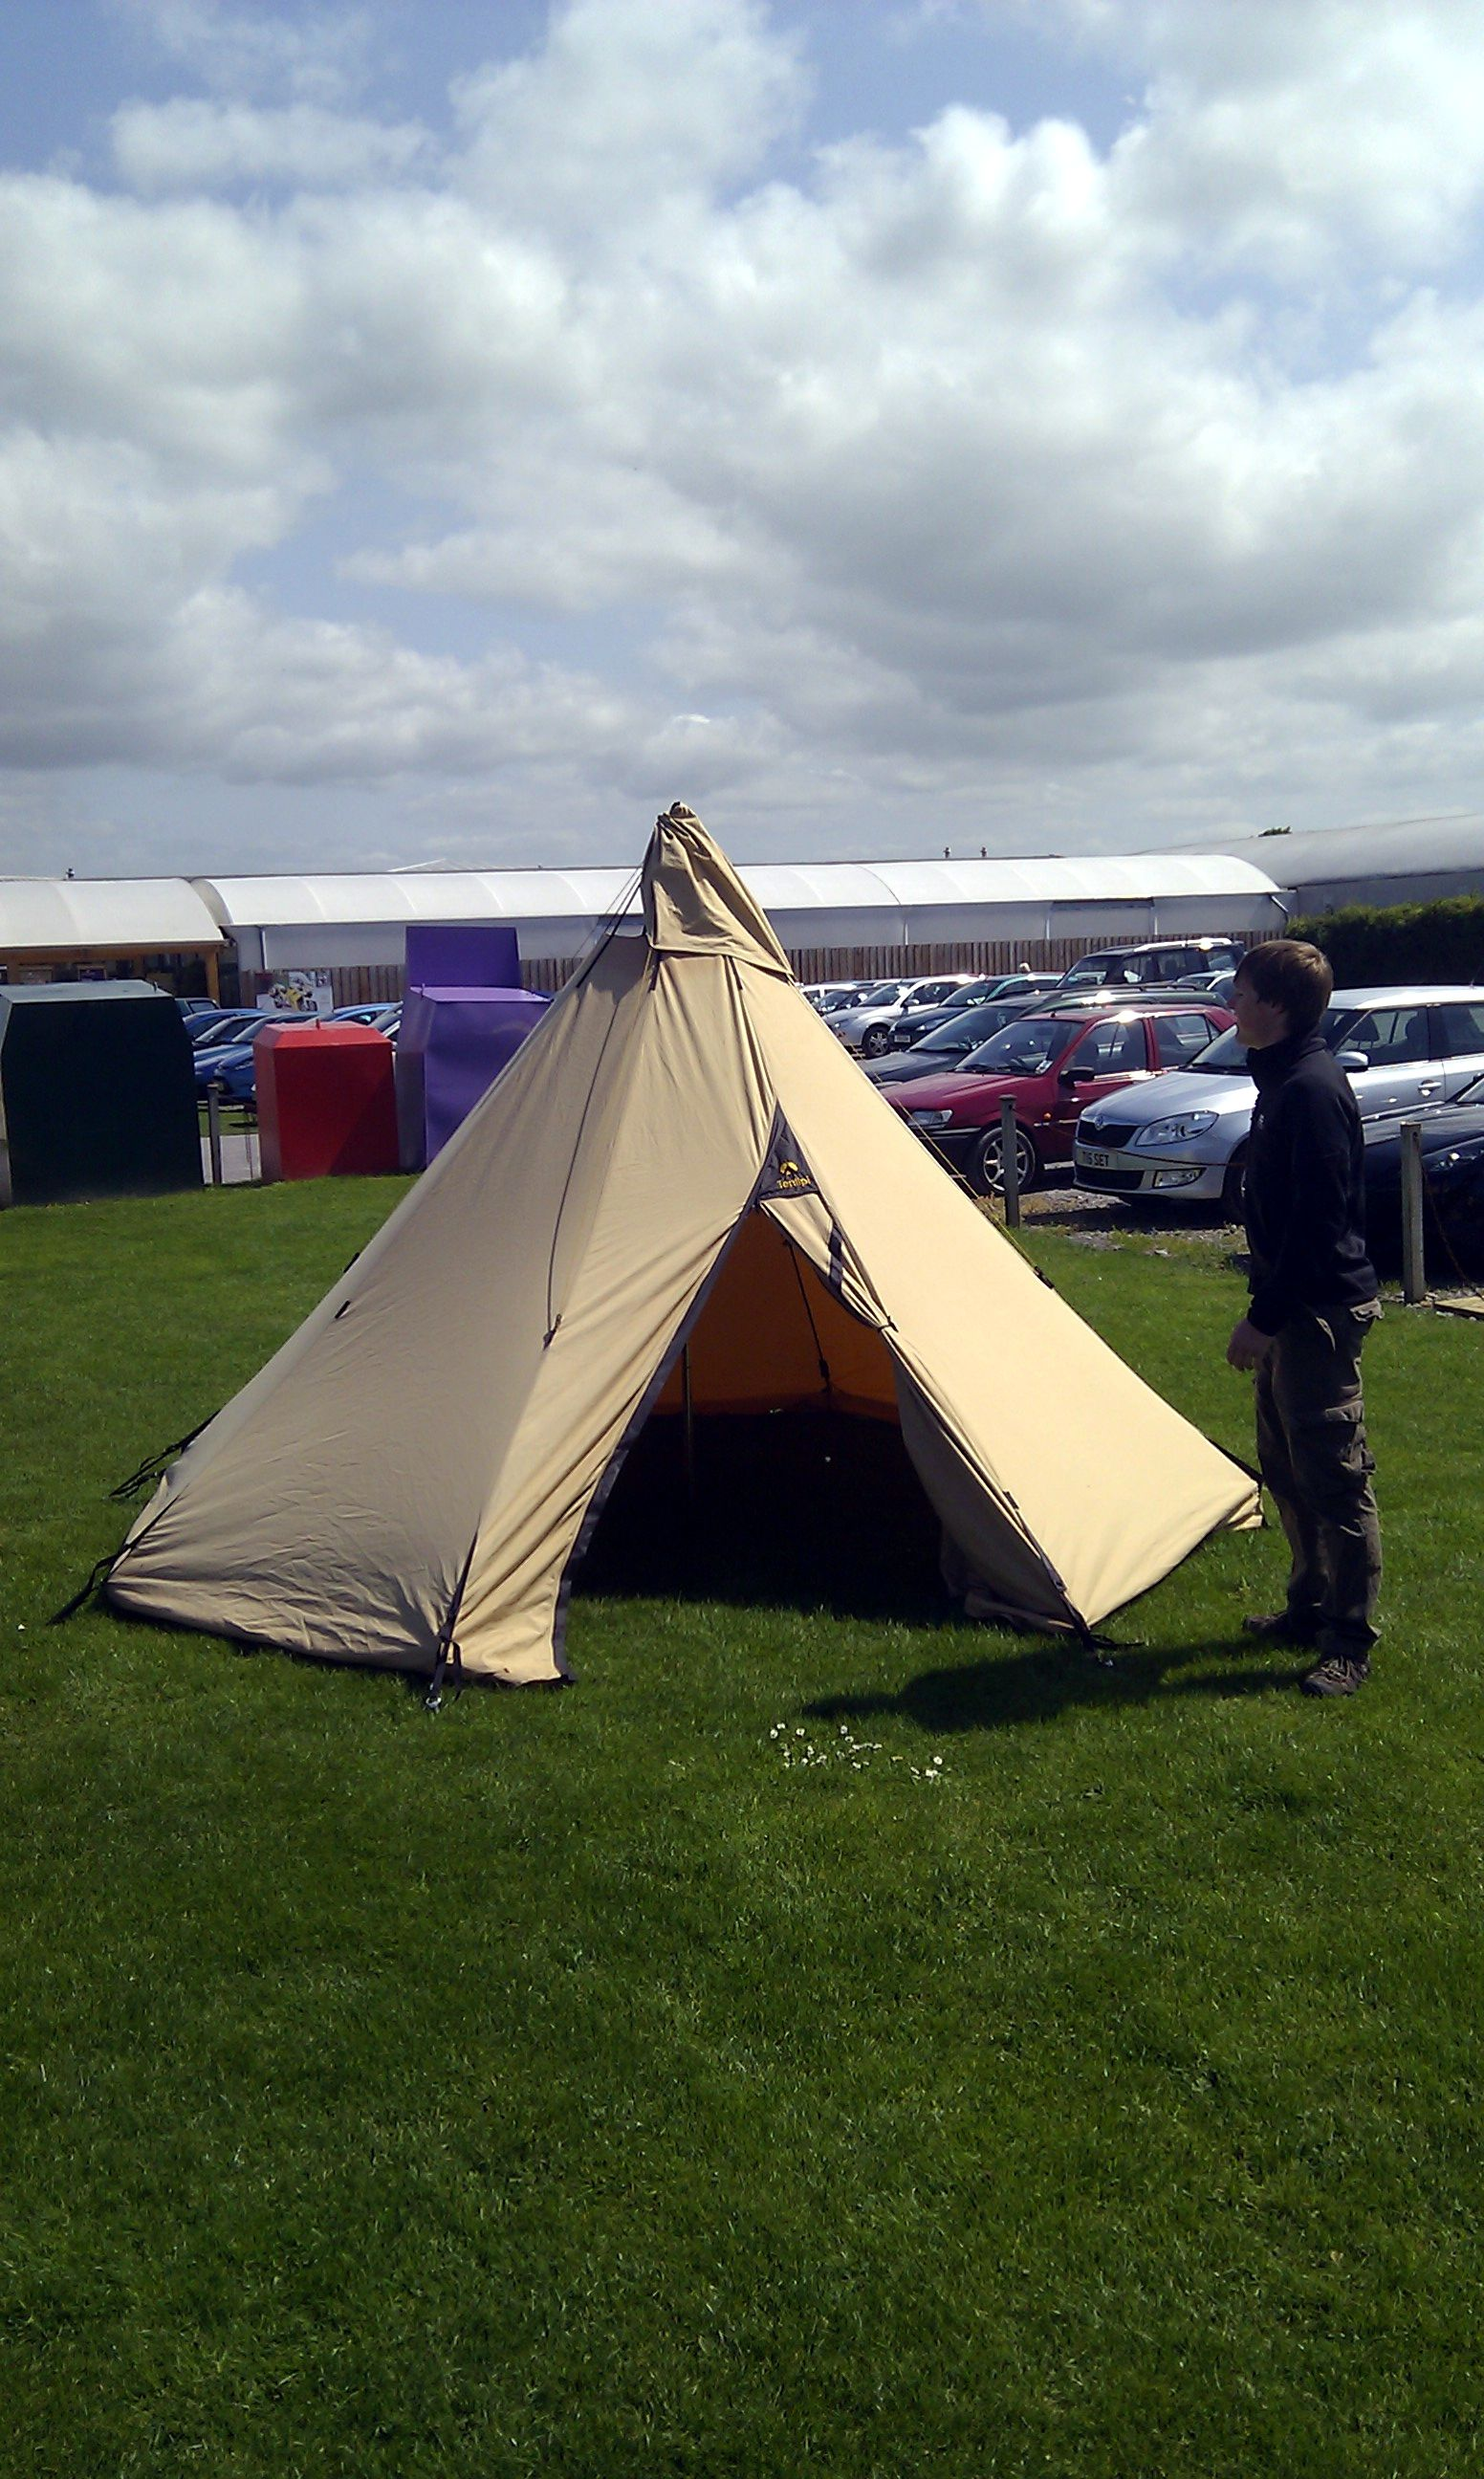 #Tentipi Onyx 5 with Matt of the Taunton Leisure team stood next to it : taunton leisure tents - memphite.com